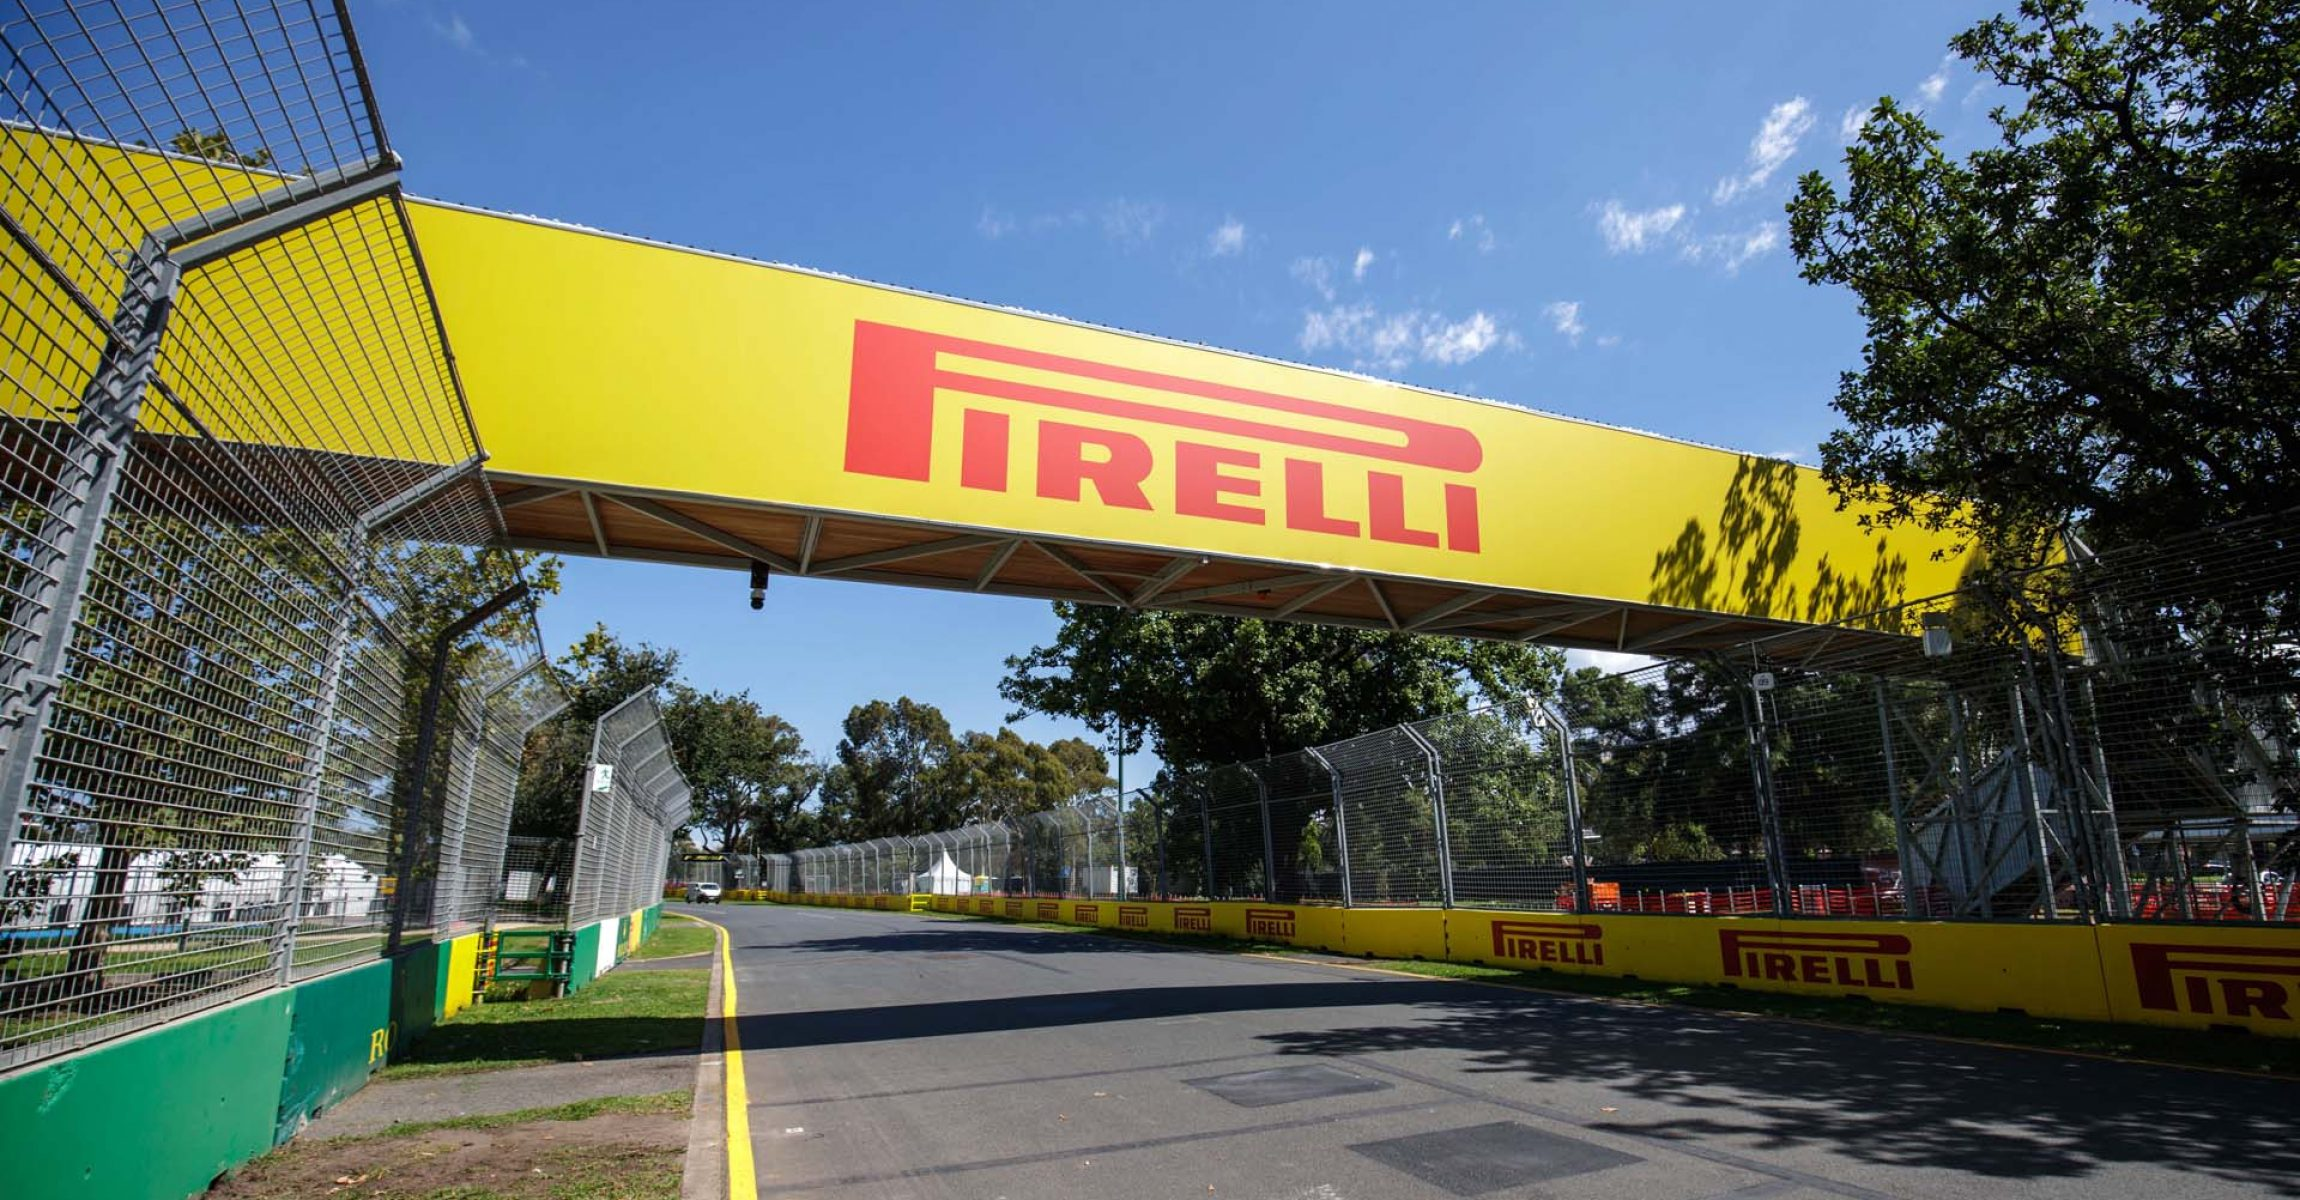 MARCH 11: Pirelli branding around the track during the Australian GP on March 11, 2020. (Photo by Zak Mauger / LAT Images)